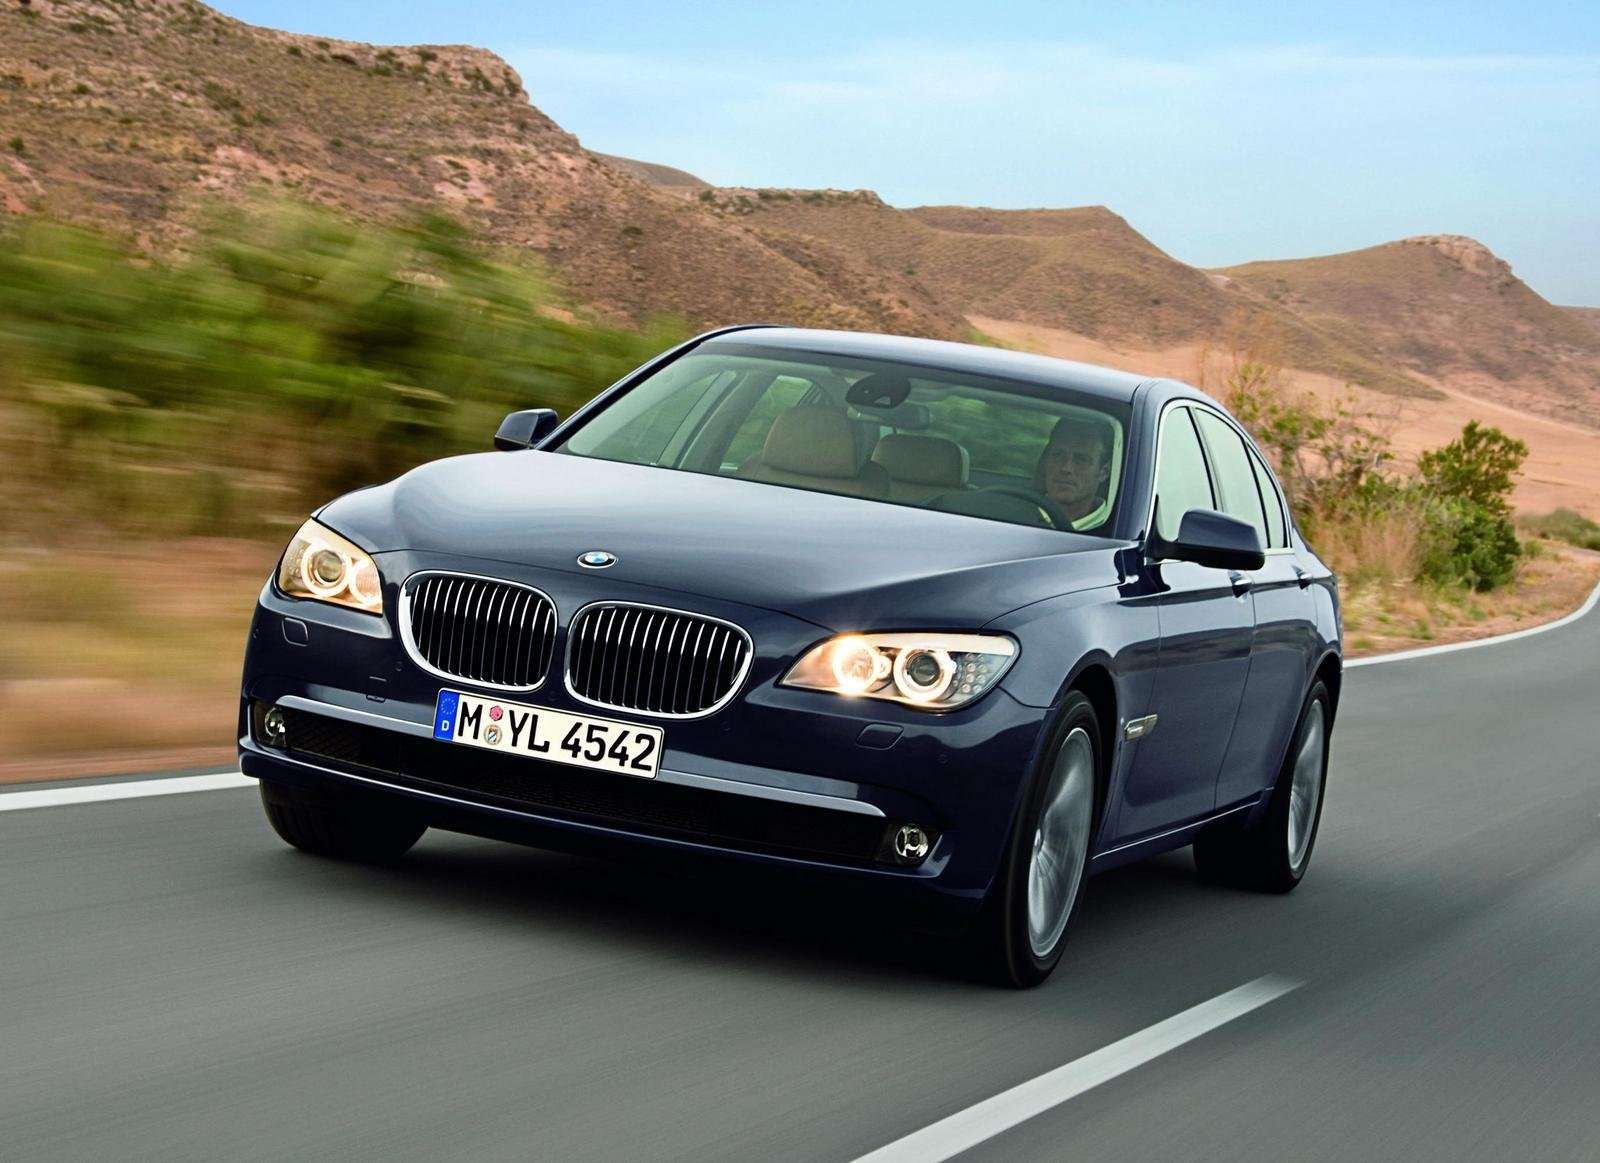 bmw 7 series hybrid coming in 2009 news top speed. Black Bedroom Furniture Sets. Home Design Ideas